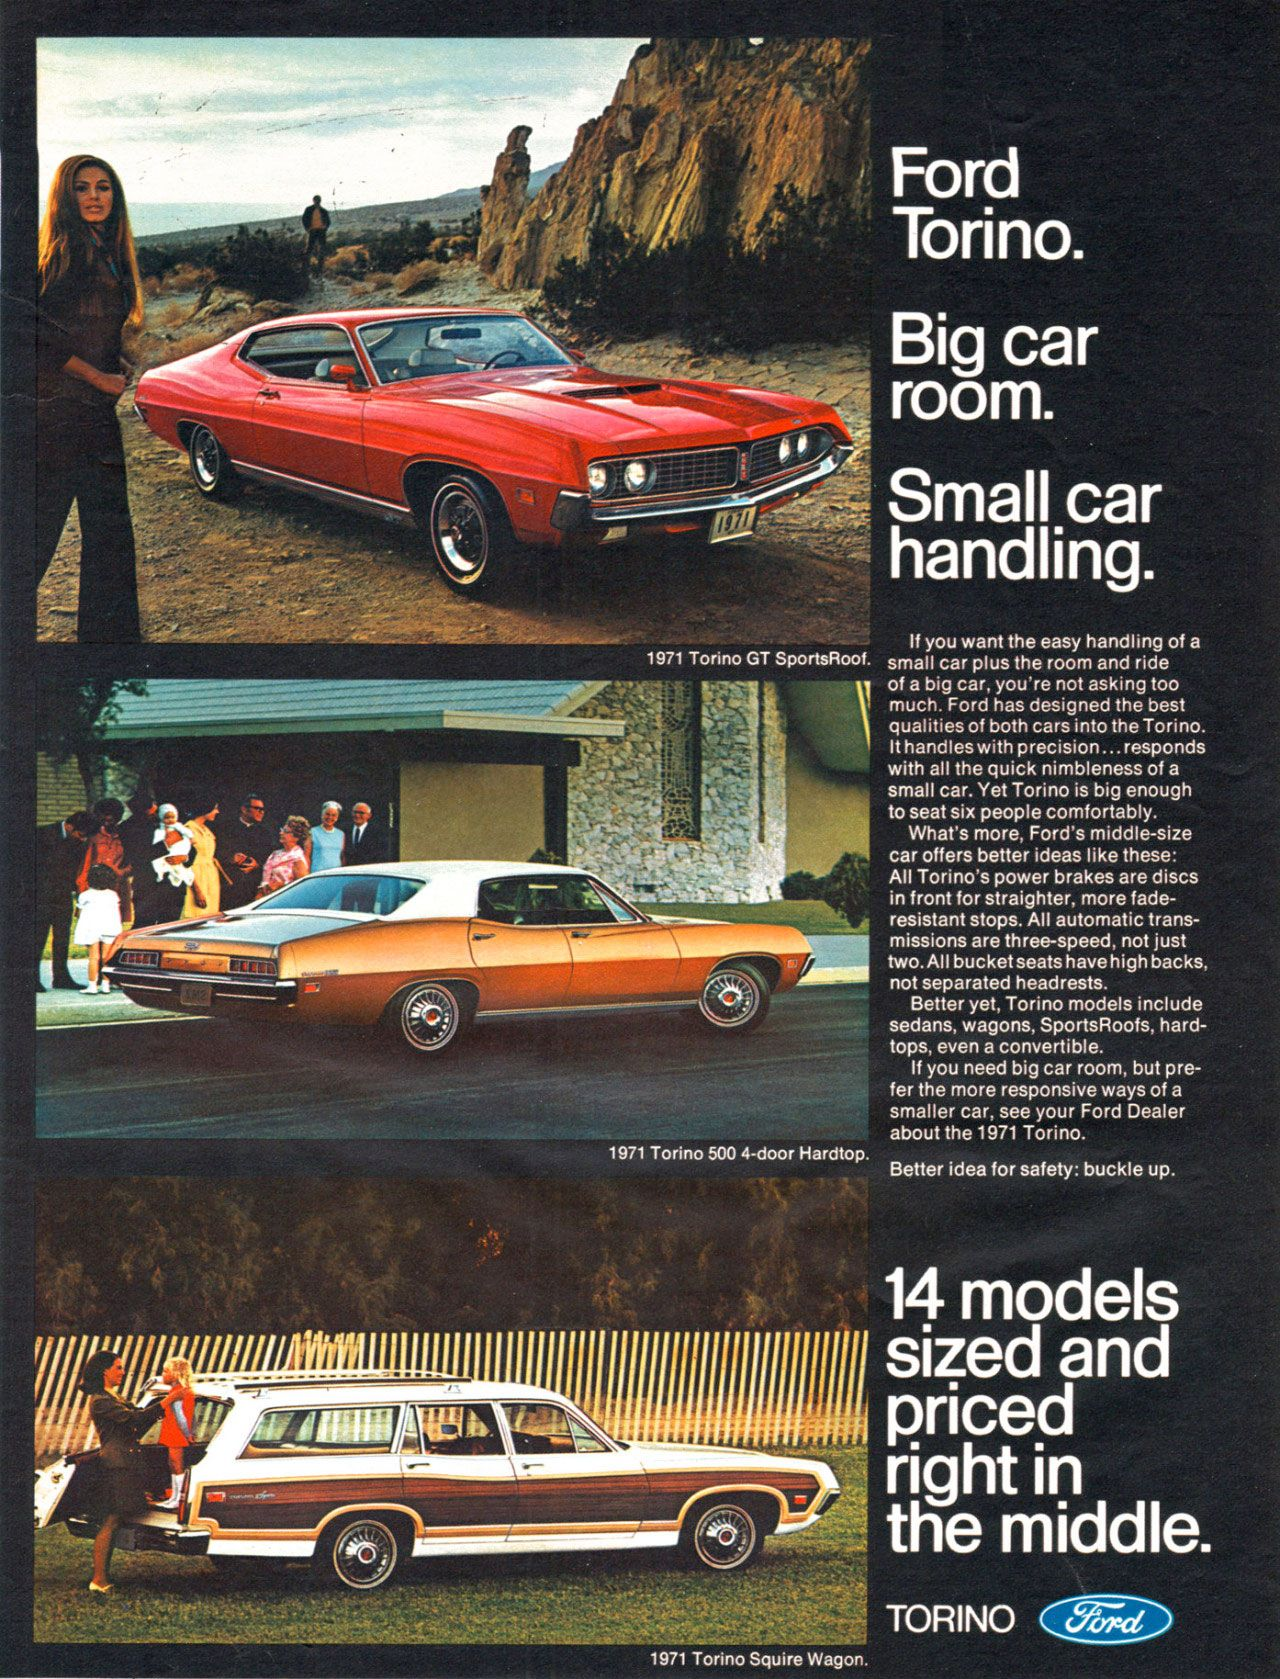 1971 Torino GT SportsRoof. 1971 Torino 500 4-door Hardtop. 1971 Torino Squire Wagon. Ford Torino. Big car room. Small car handling. If you want the easy handling of a small car plus the room and ride of a big car. you're not asking too much. Ford has designed the best qualities of both cars into the Torino. It handles with precision... responds with all the quick nimbleness of a small car. Yet Torino is big enough to seat six people comfortably. What's more, Ford's middle-size car offers better ideas like these: All Torino's power brakes are discs in front for straighter. more fade-resistant stops. All automatic trans-missions are three-speed. not just two.All bucket seats have high backs. not separated headrests. Better yet. Torino models include sedans, wagons. SportsRoofs. hard-tops. even a convertible. If you need big car room, but pre-fer the more responsive ways of a smaller car, see your Ford Dealer about the 1971 Torino. Better idea for safety: buckle up. 14 models sized and priced right in the middle.